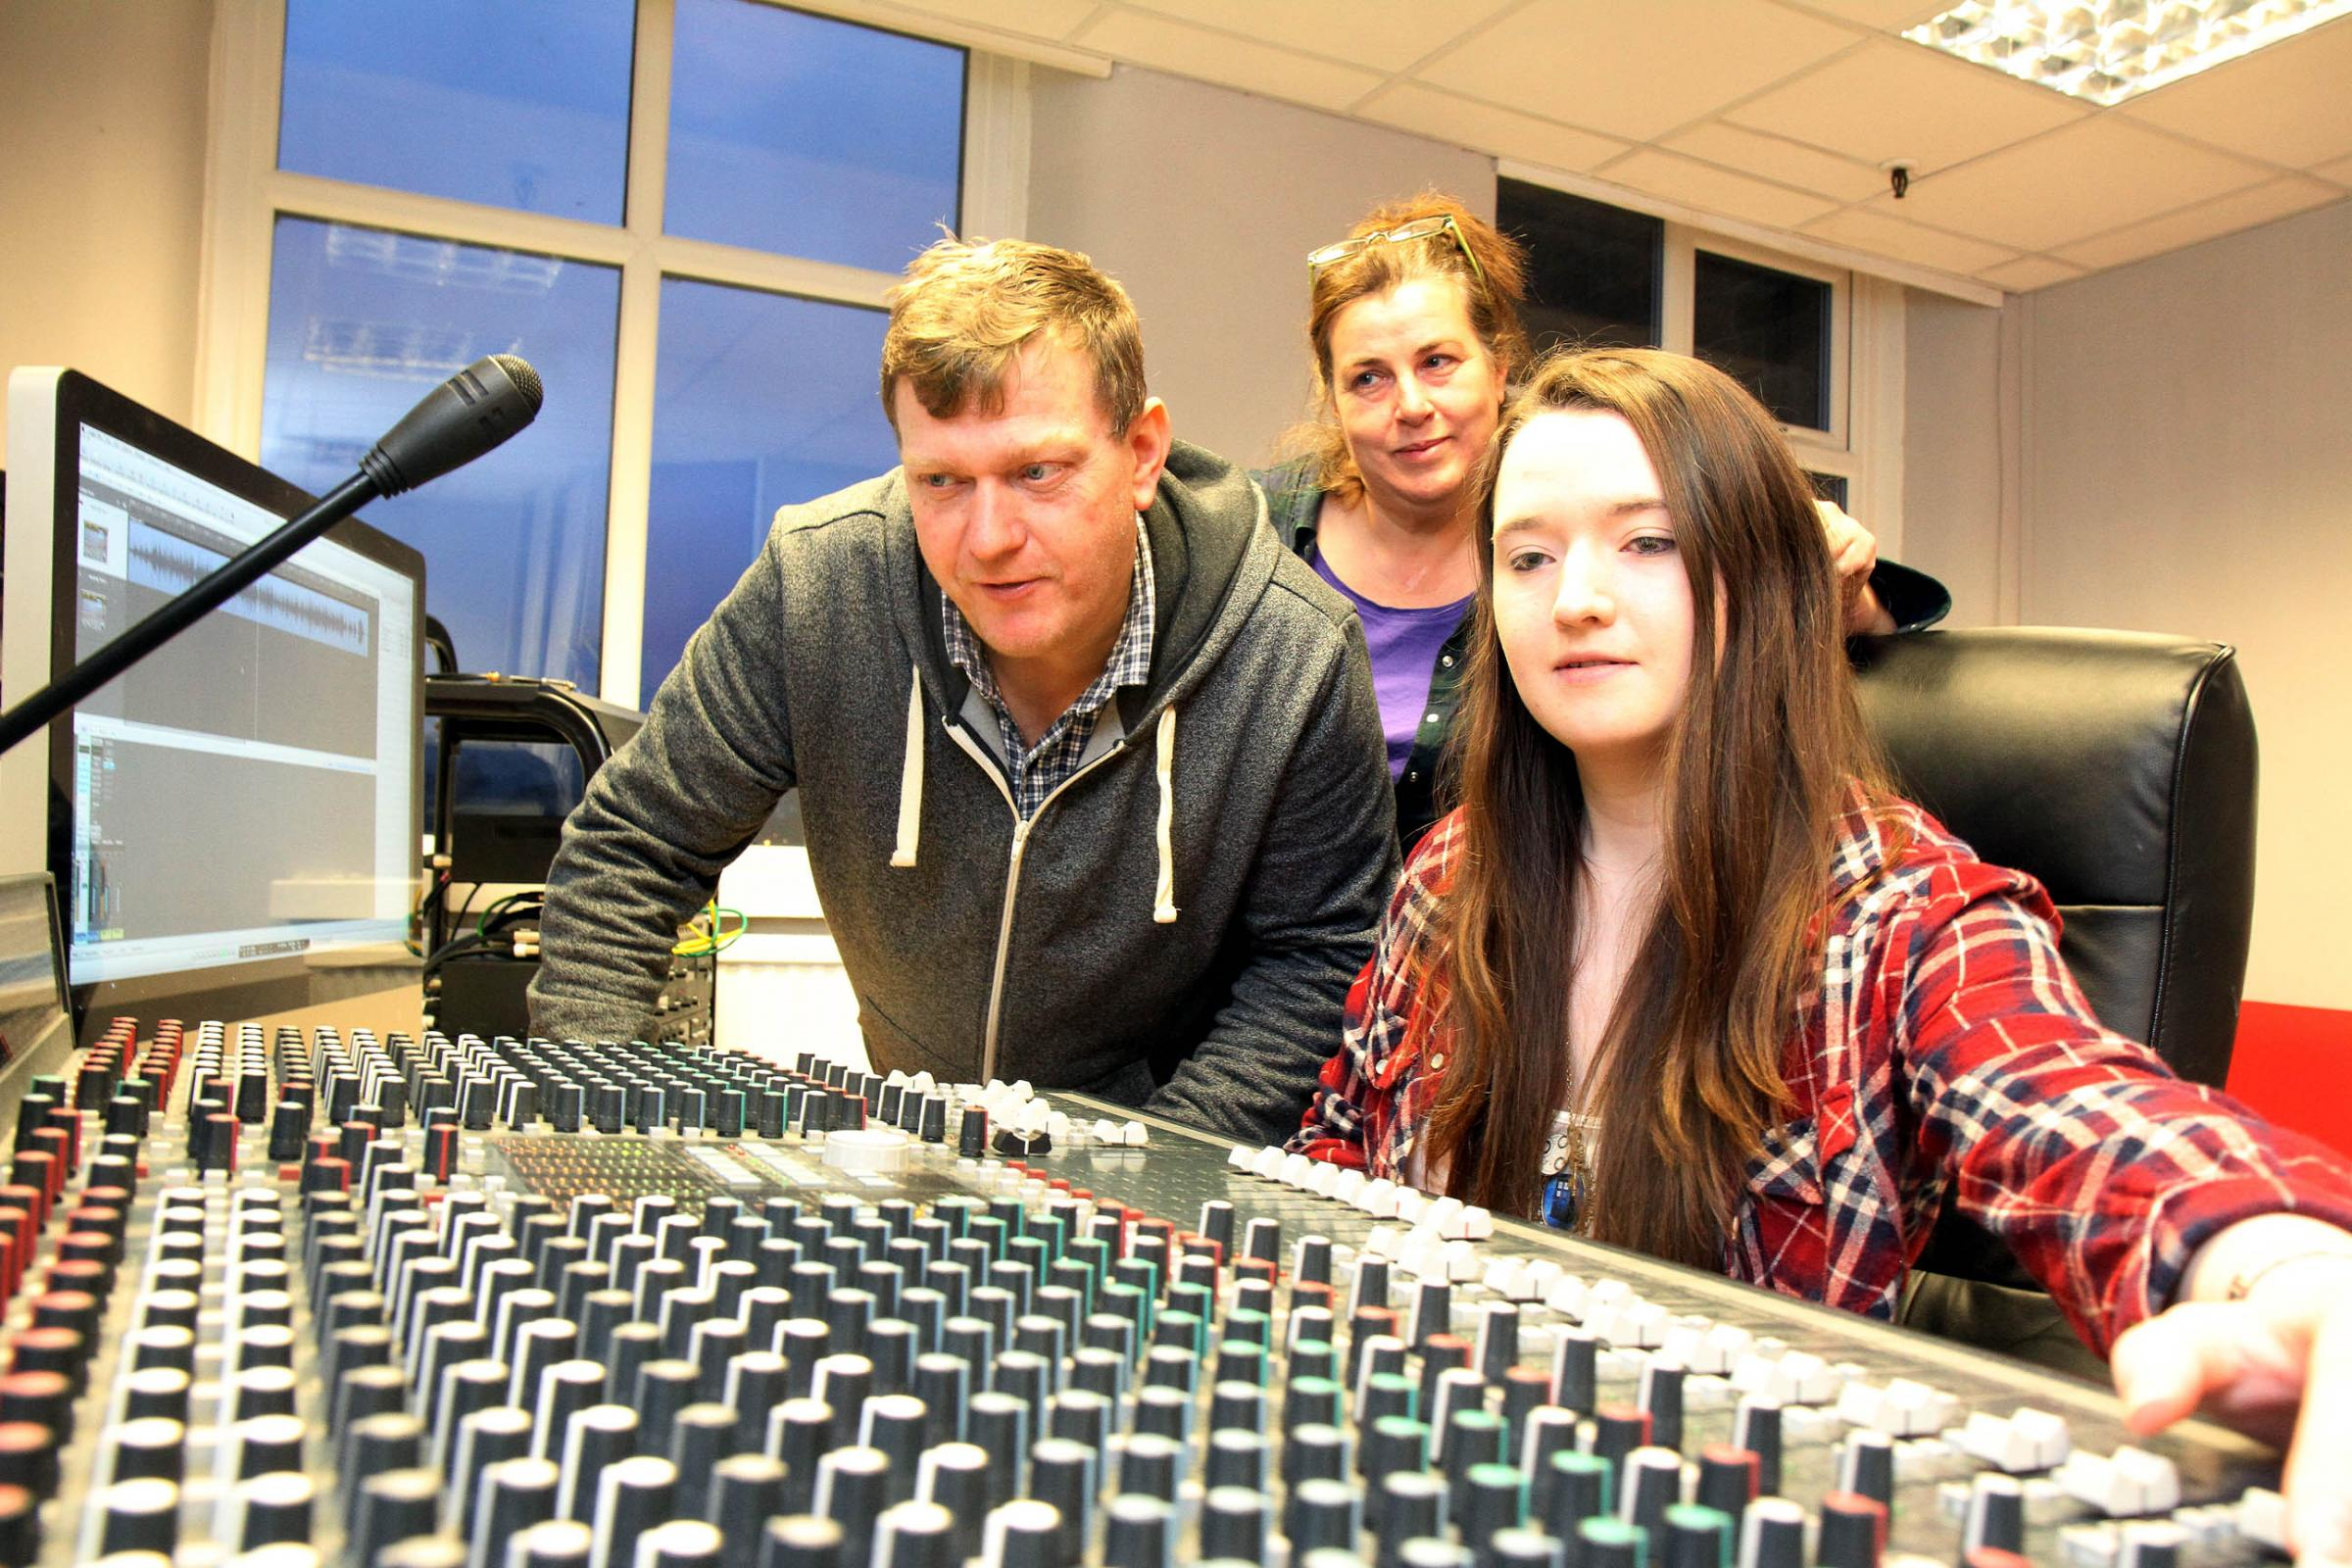 Laura Thornton, 18, at the Jam on Top studio controls, with owners Brian and Tracey Leach